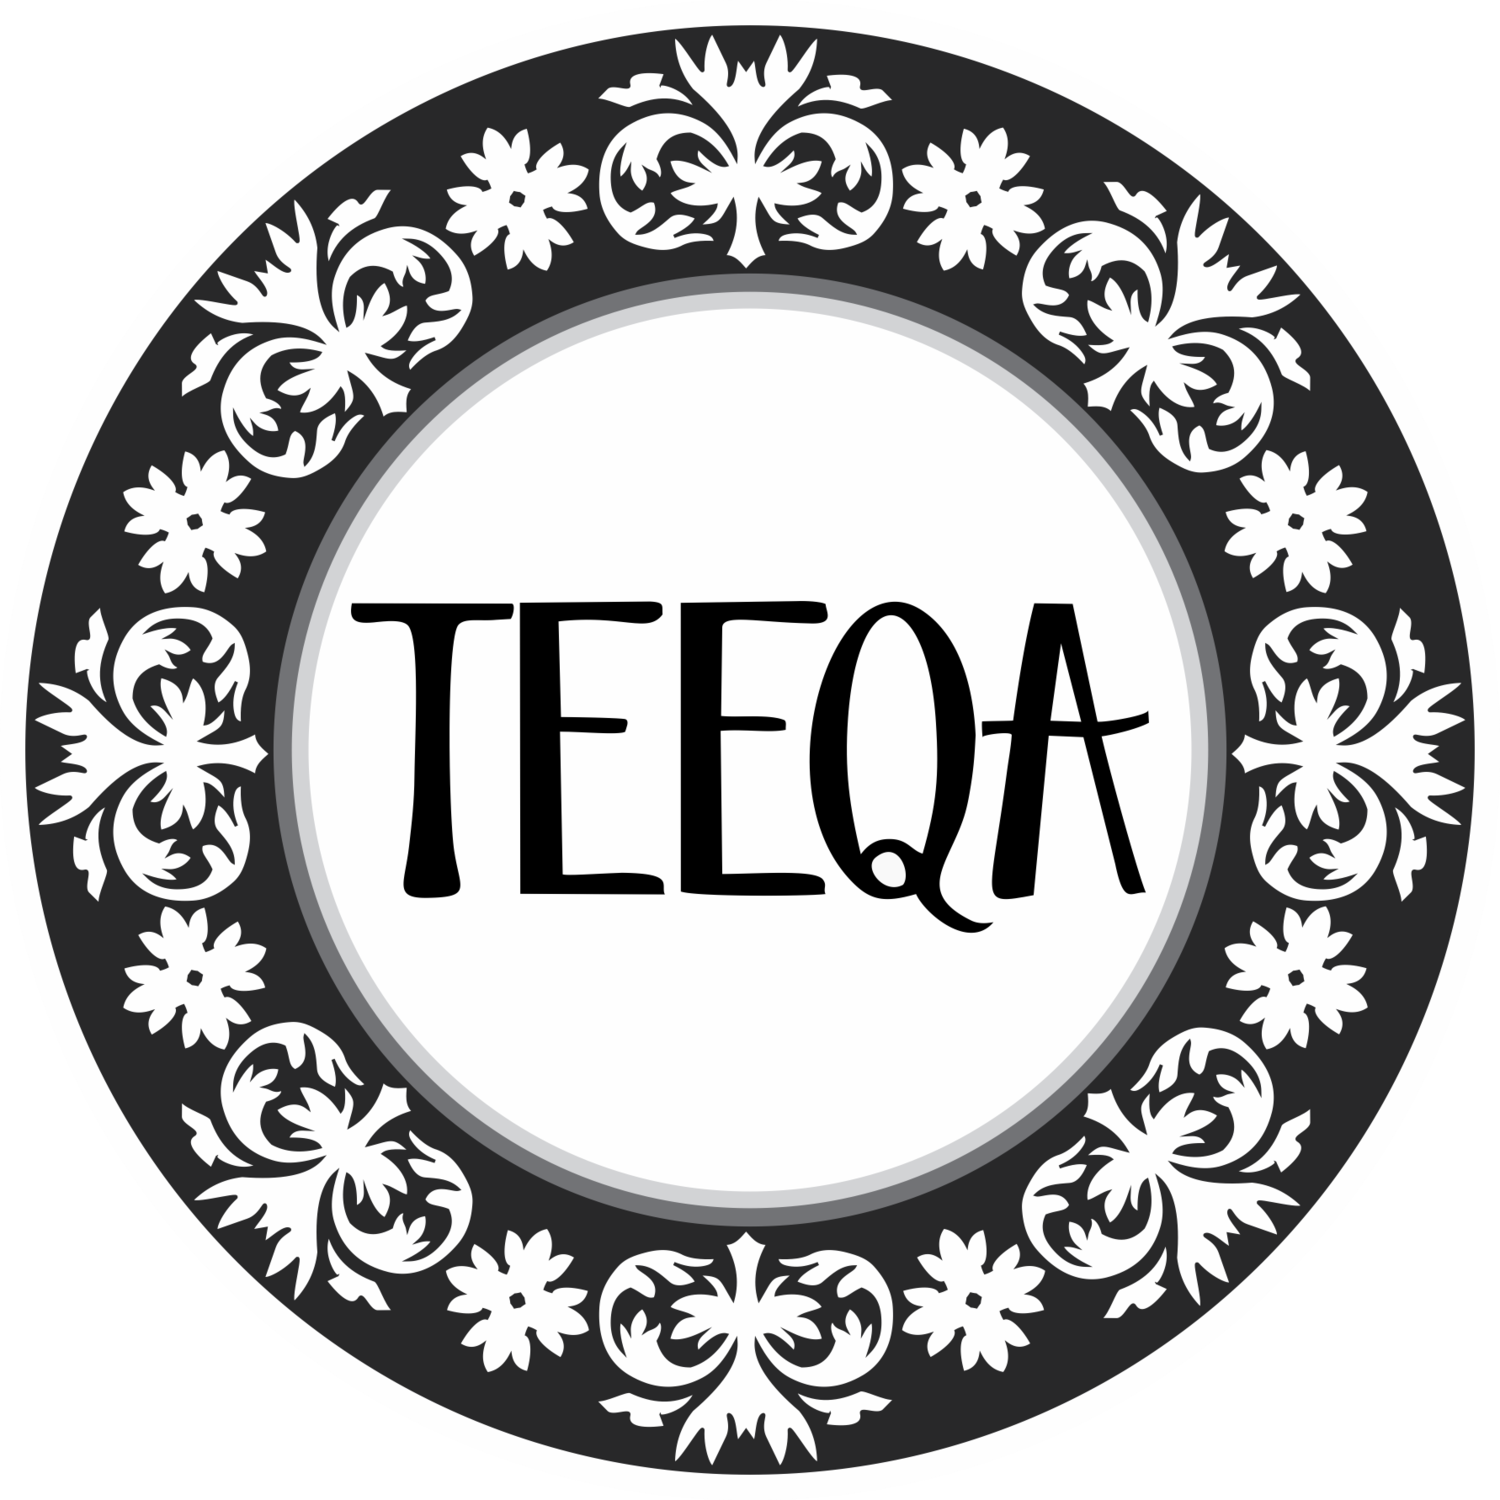 Teeqa | Activewear for those who dare